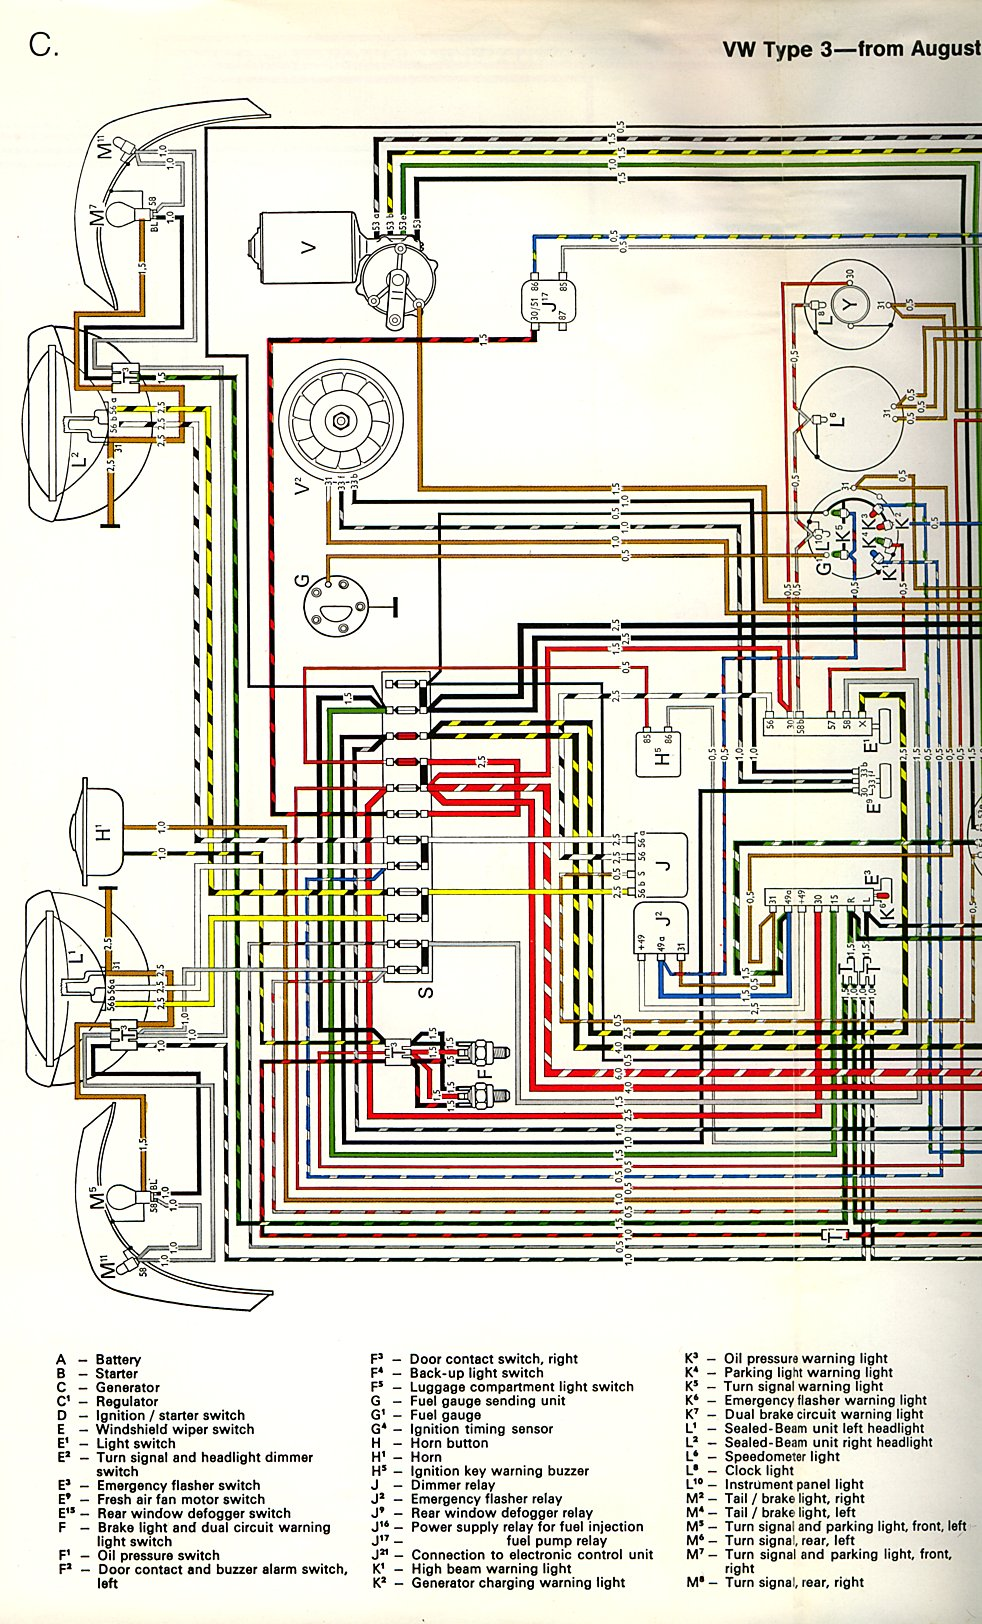 type3_72a thesamba com type 3 wiring diagrams 1973 vw wiring diagram at pacquiaovsvargaslive.co